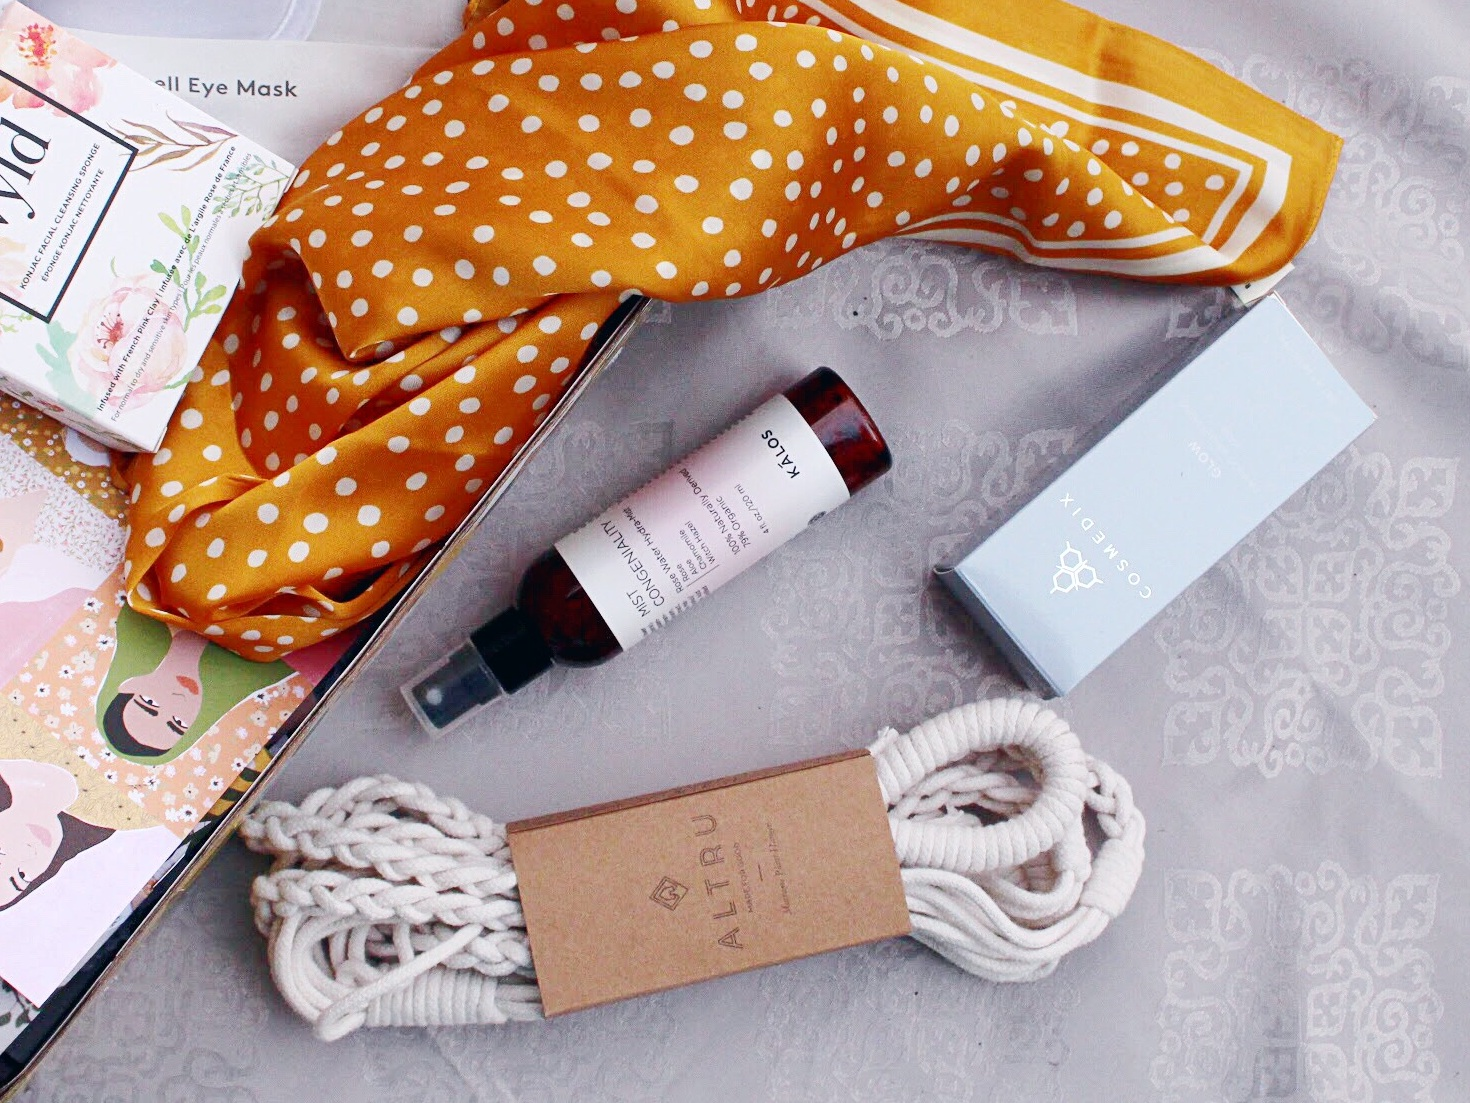 Ethical Beauty and Accessories